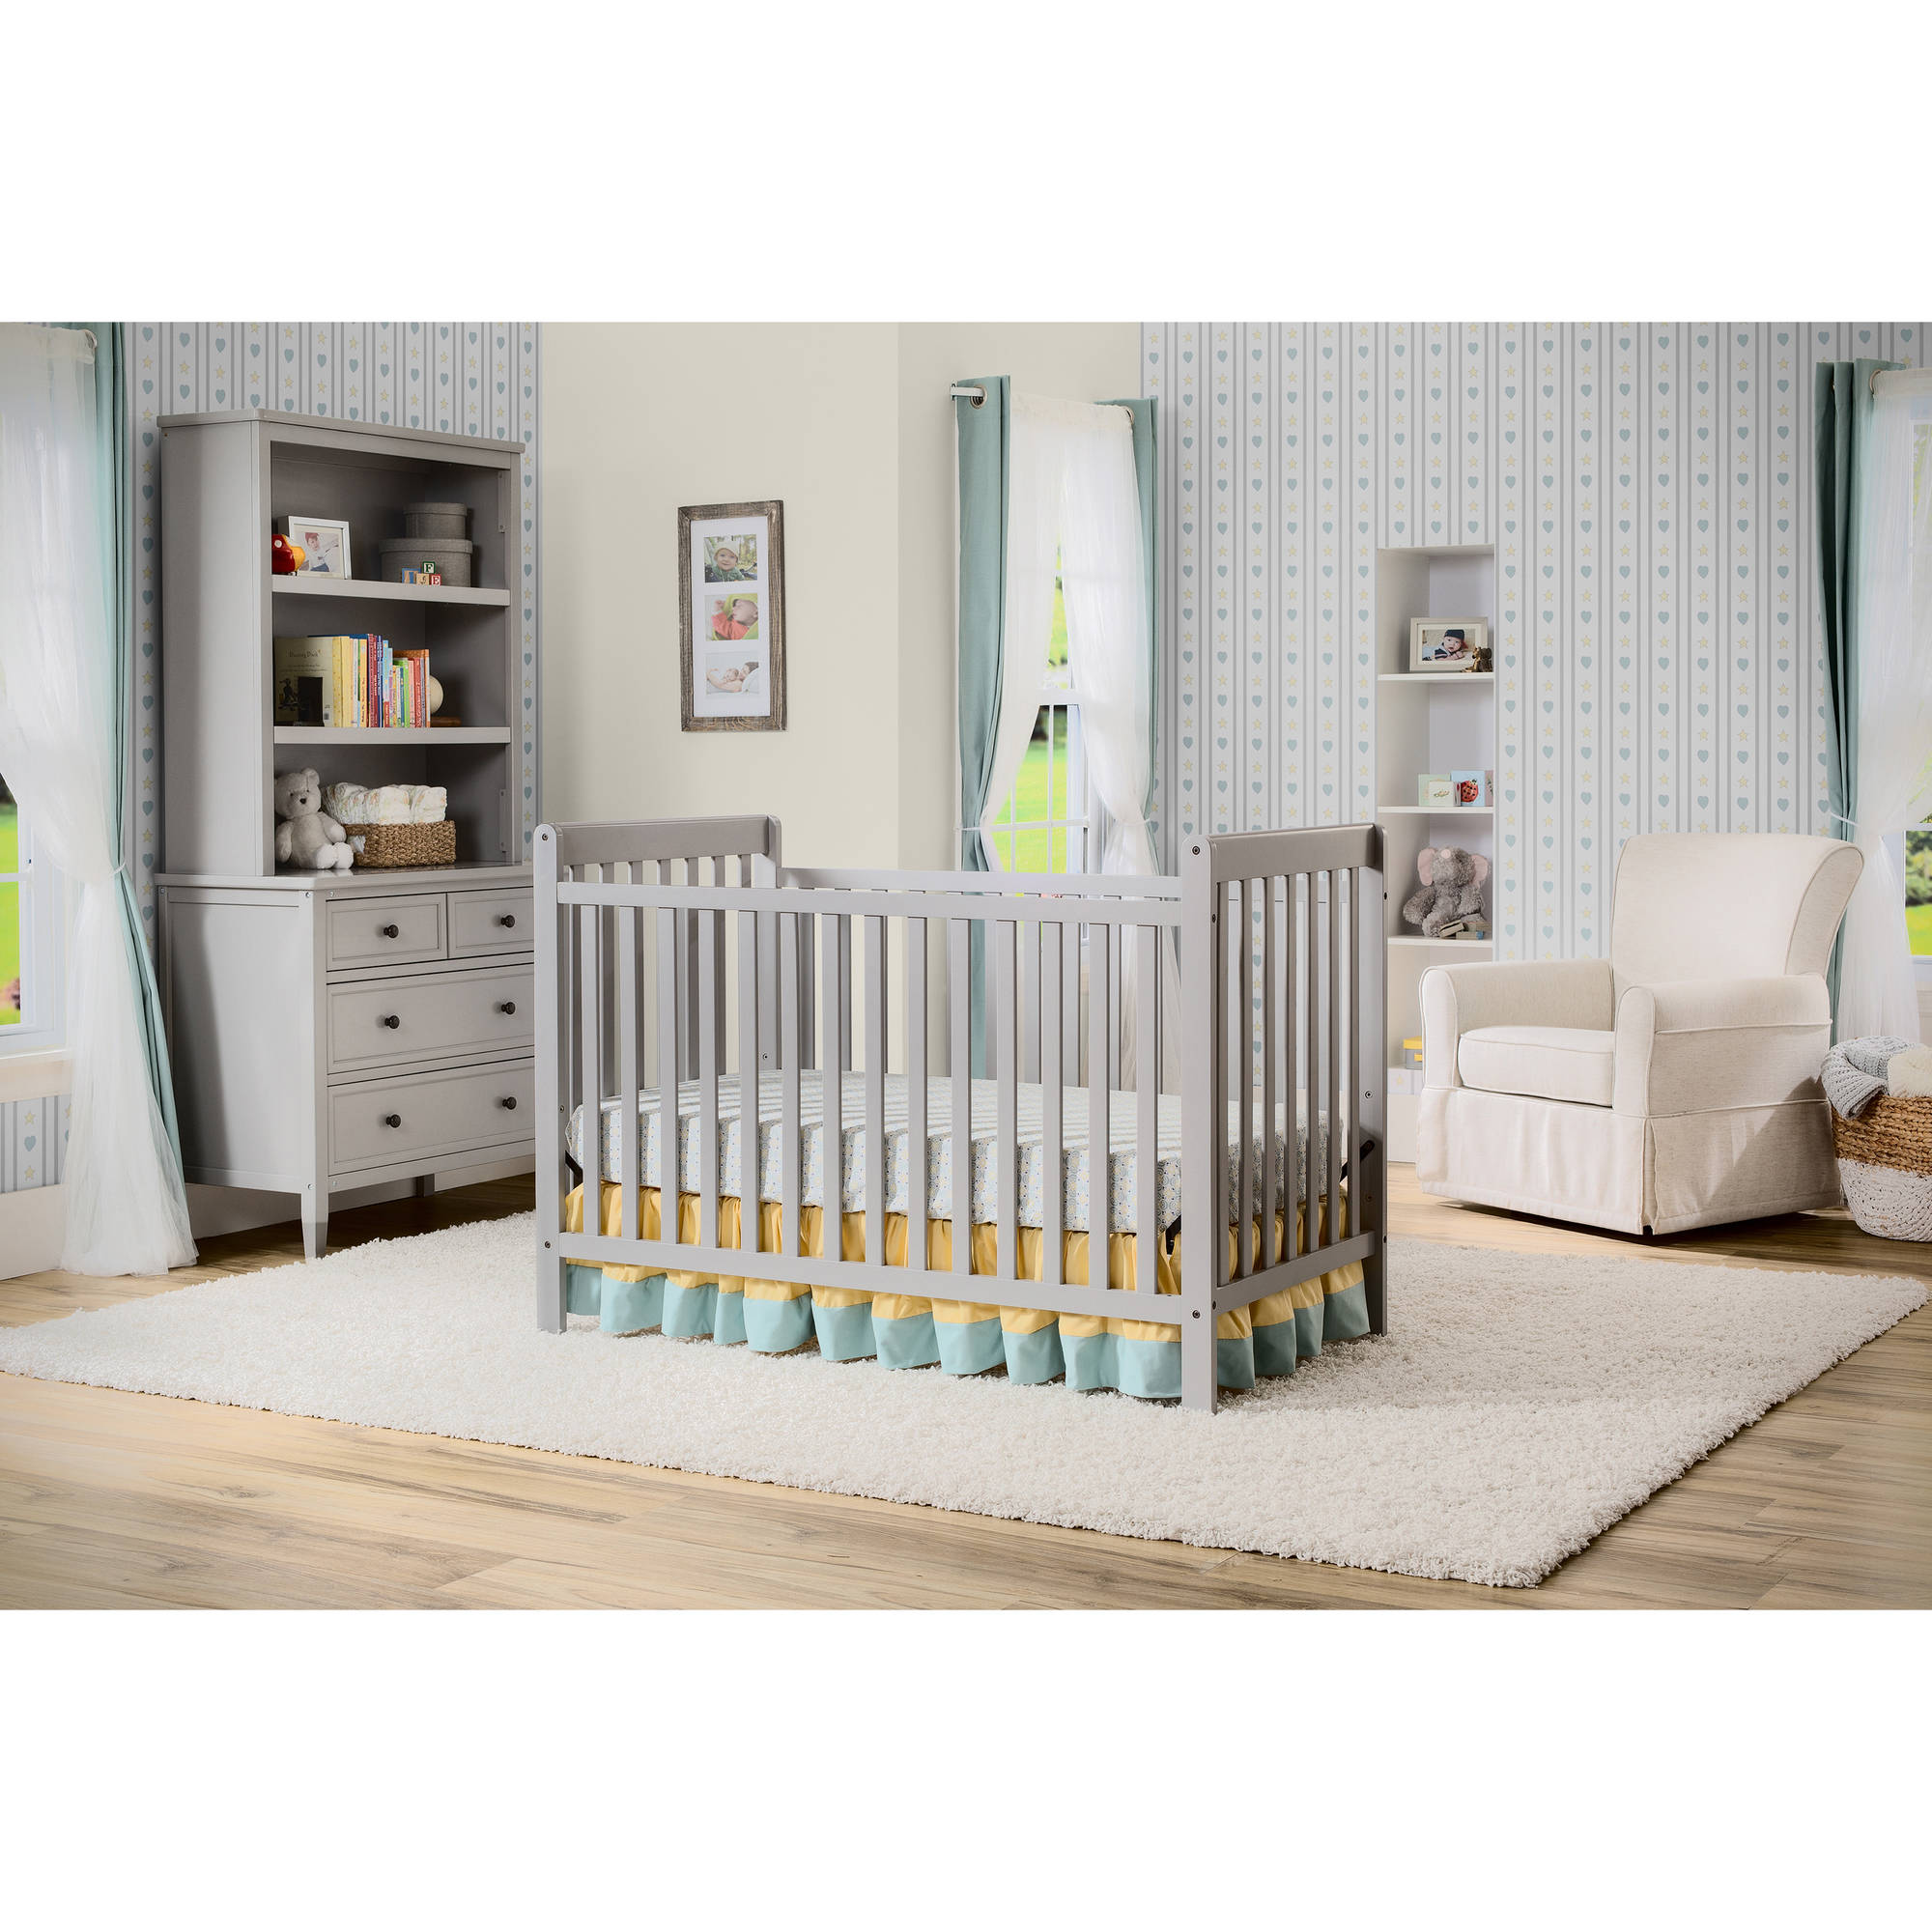 Delta Children's Products Waves 3-in-1 Fixed-Side Crib, (Choose Your Finish)